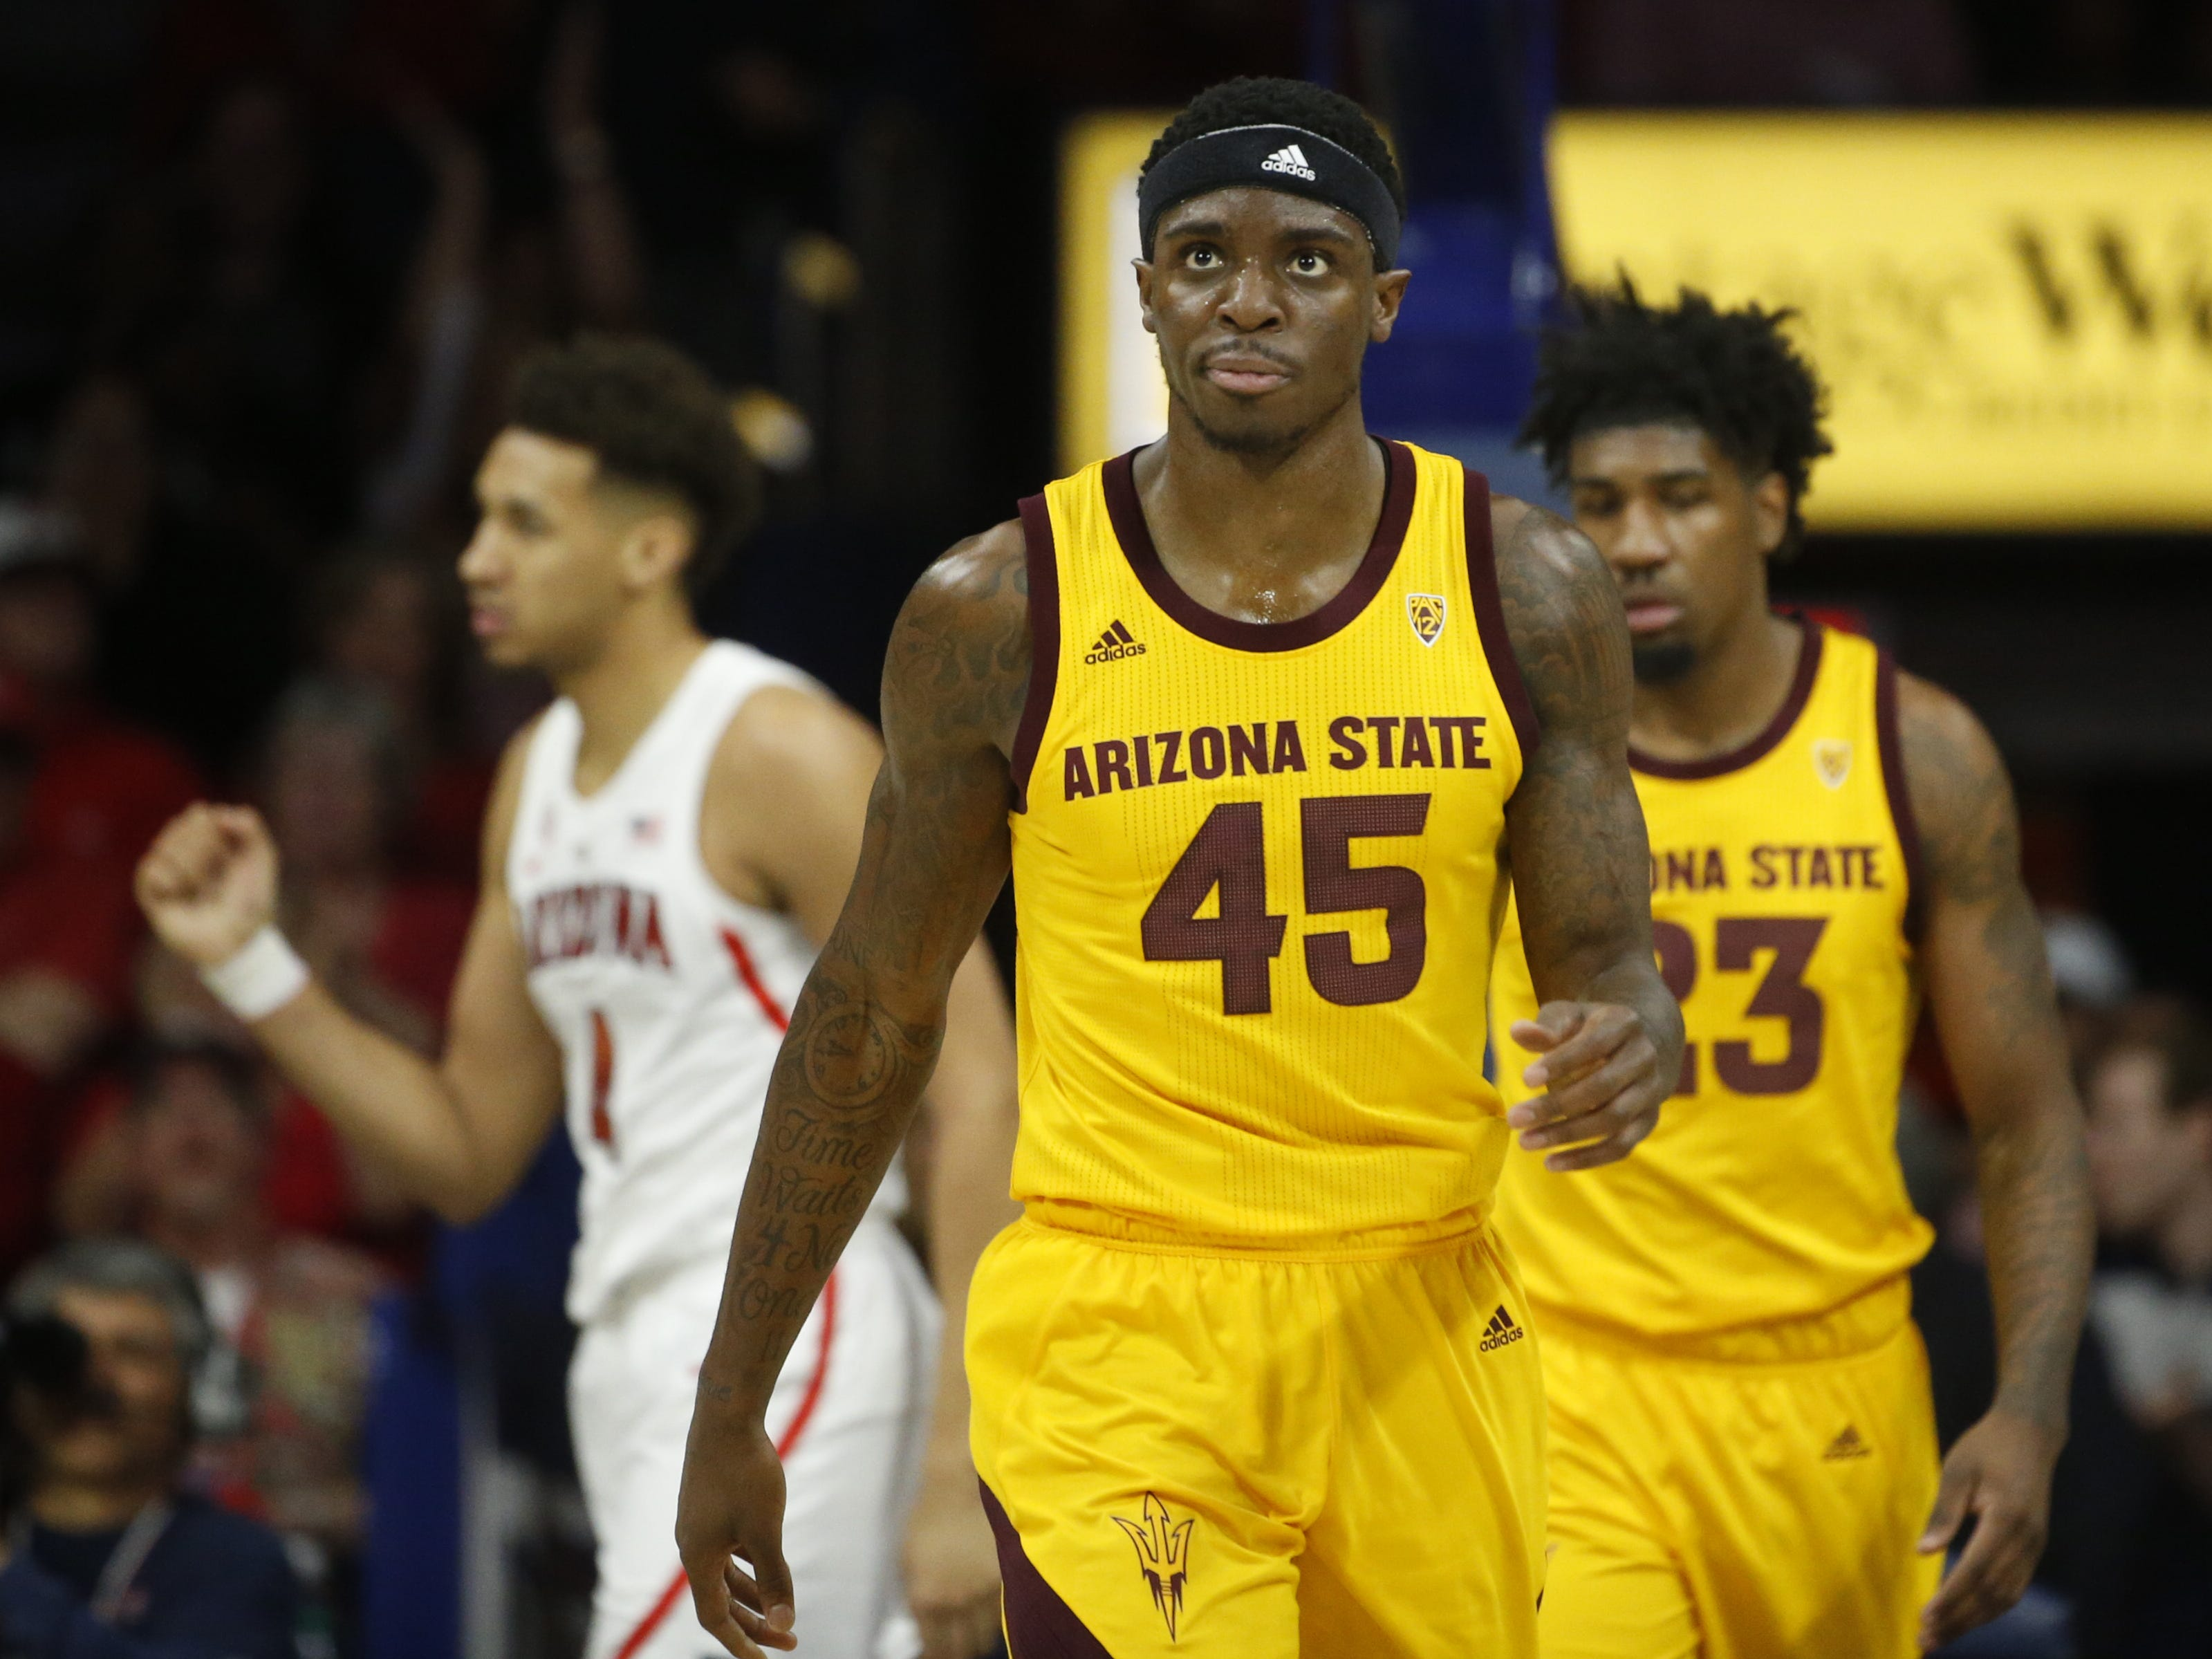 ASU's Zylan Cheatham (45) reacts after turning the ball over to Arizona during the first half at the McKale Memorial Center in Tucson, Ariz. on March 9, 2019.